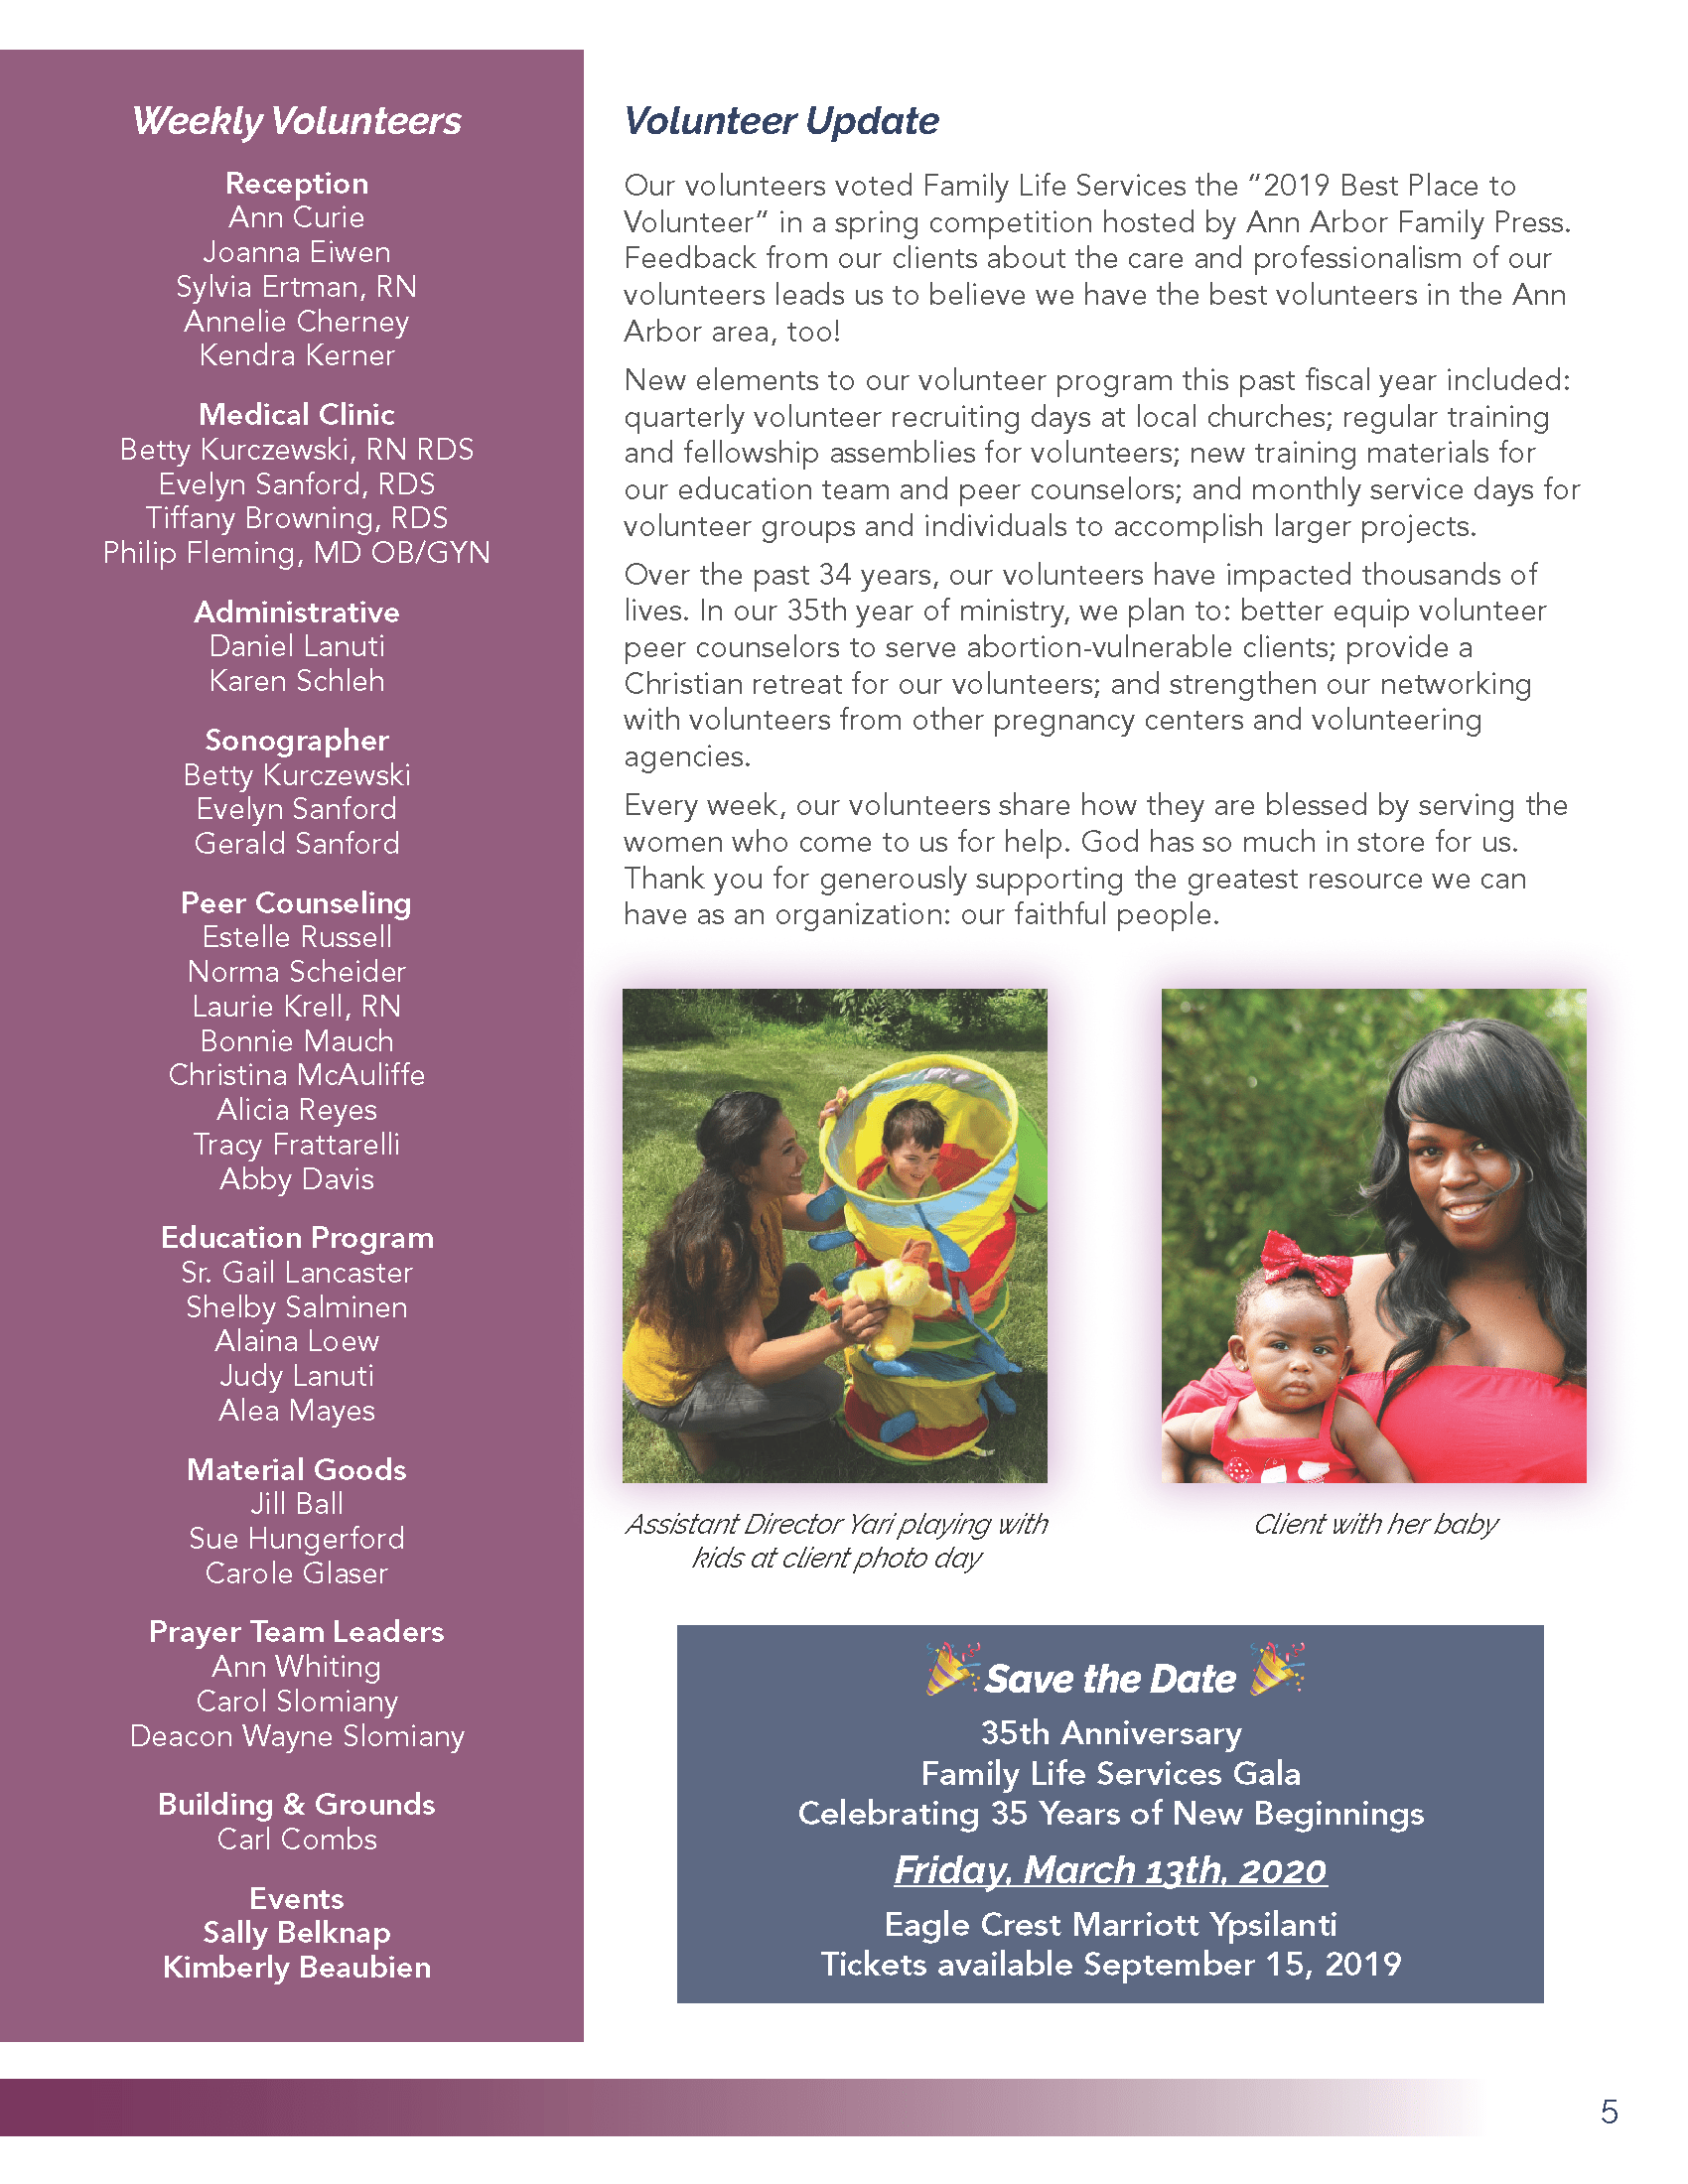 Image of 2019 Annual Report Page 5 with volunteer update, list of regular volunteers, and save the date information for 2020 gala on March 20 at Eagle Crest Marriott in Ypsilanti